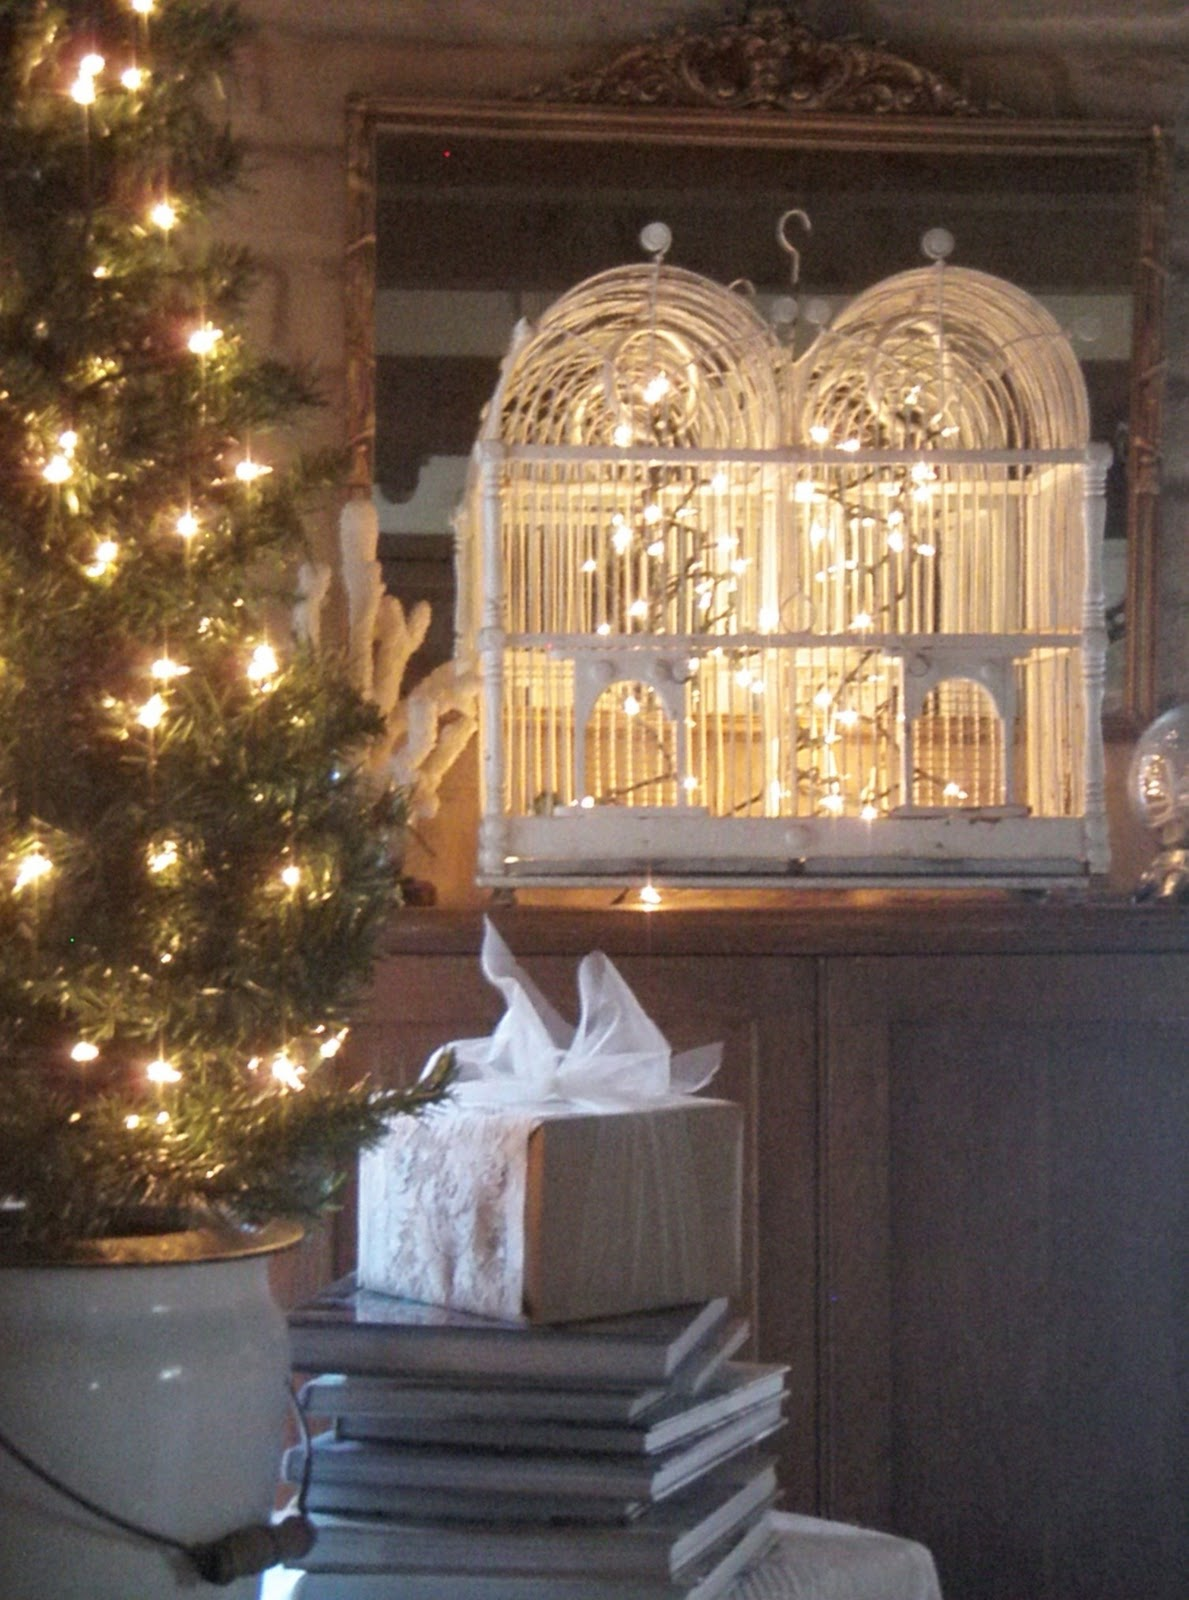 Our hopeful home christmas decorating with vintage birdcages for Indoor light decoration ideas